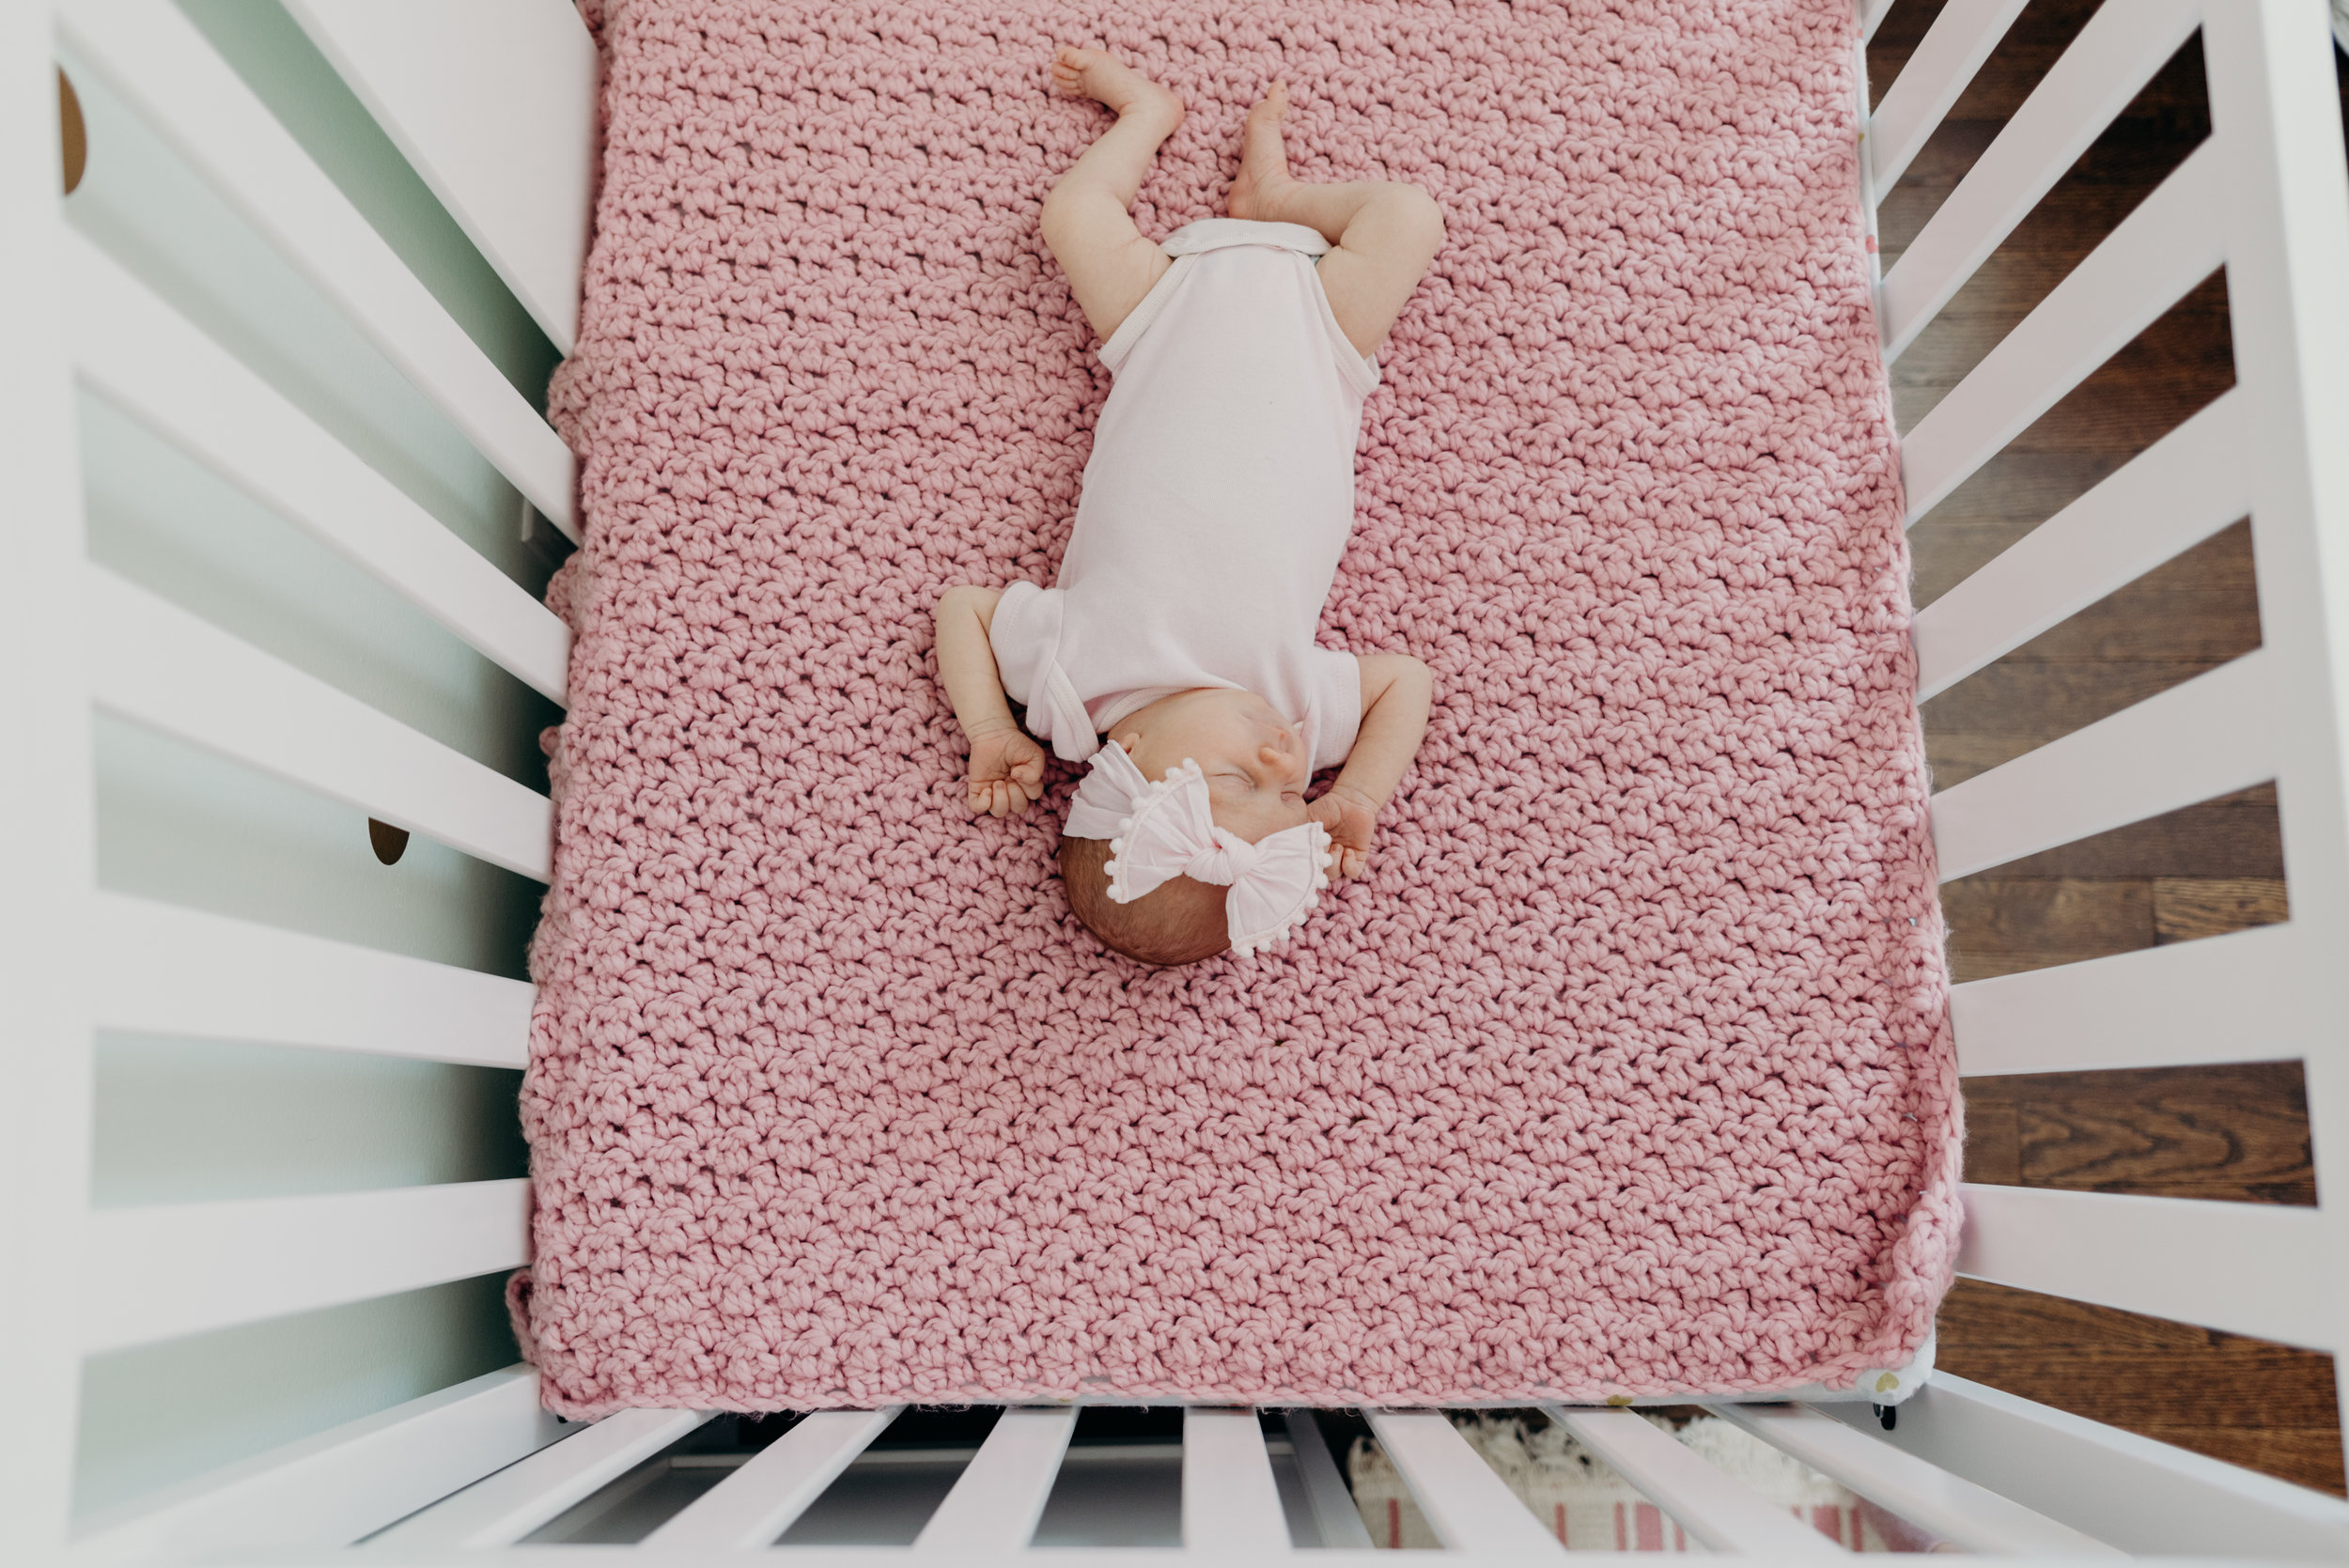 Newborn-at-home-lifestyle-photography-dc-11.jpg